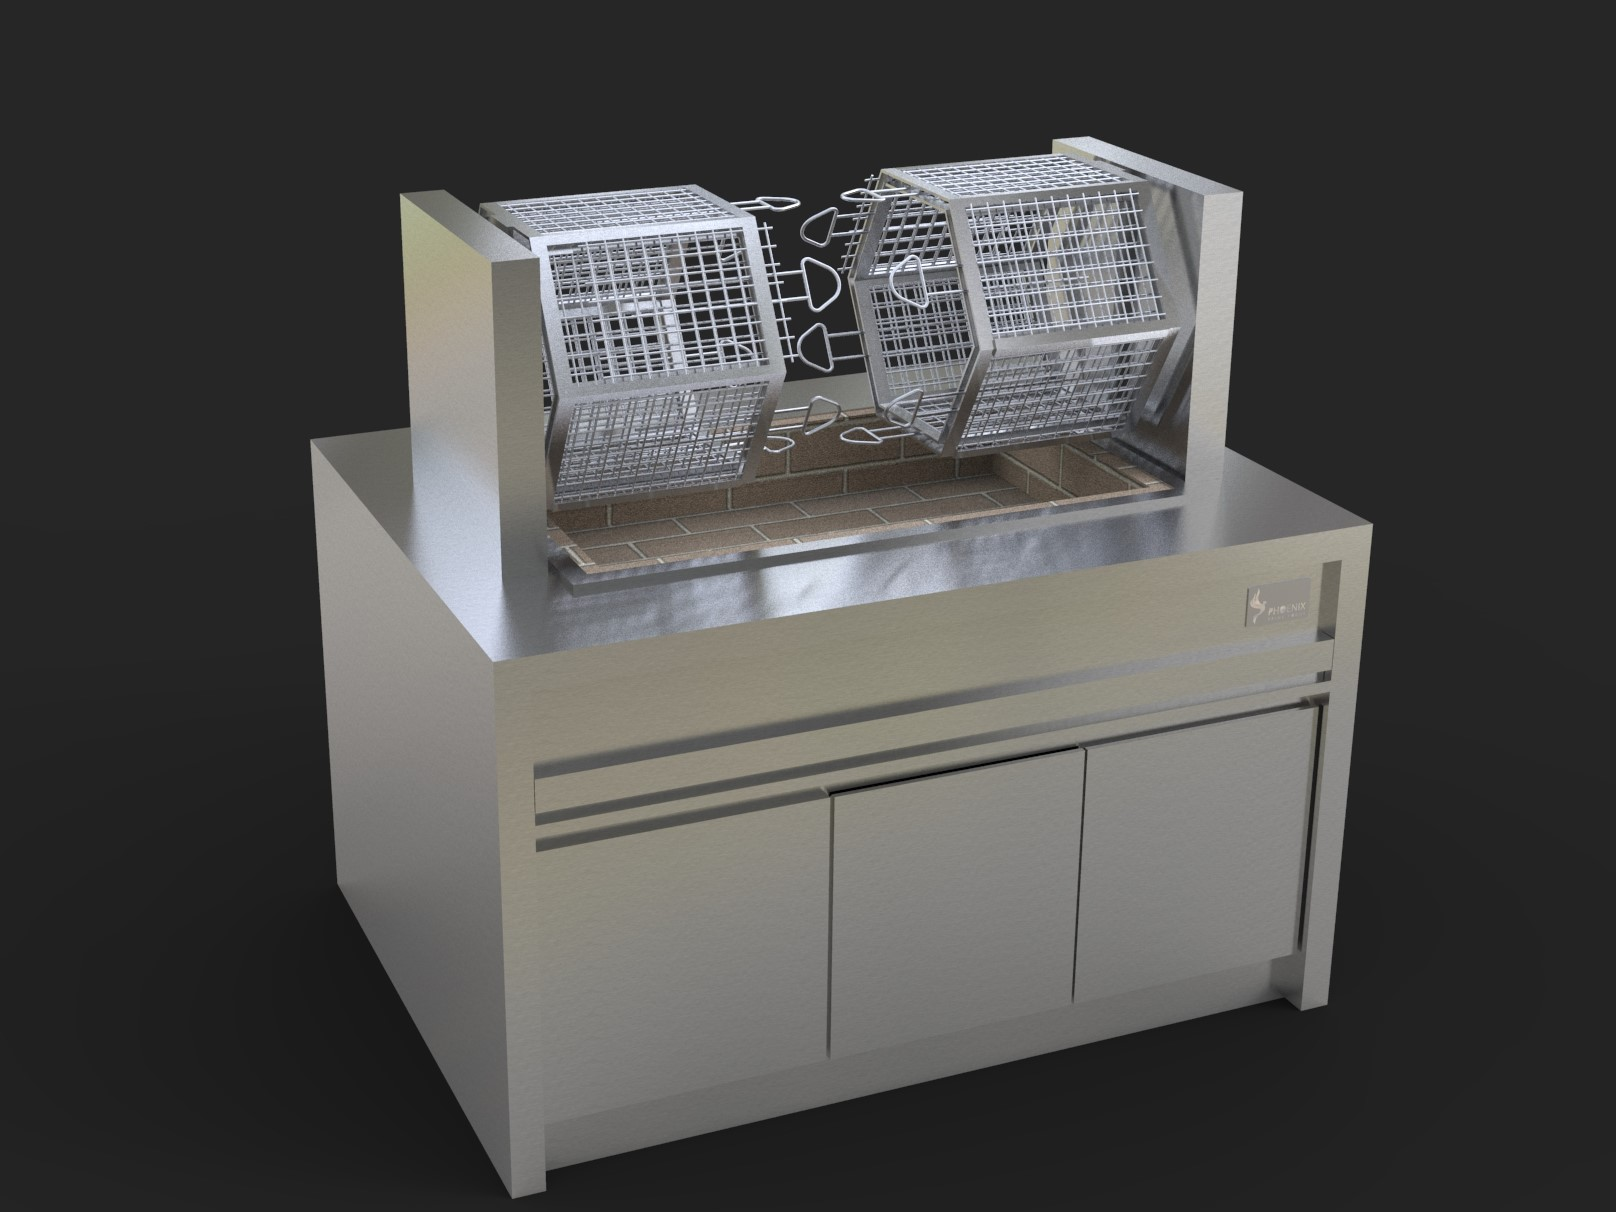 Feature Multi-Rotisserie with Adjustable Rotation, Charcoal/Wood Fired